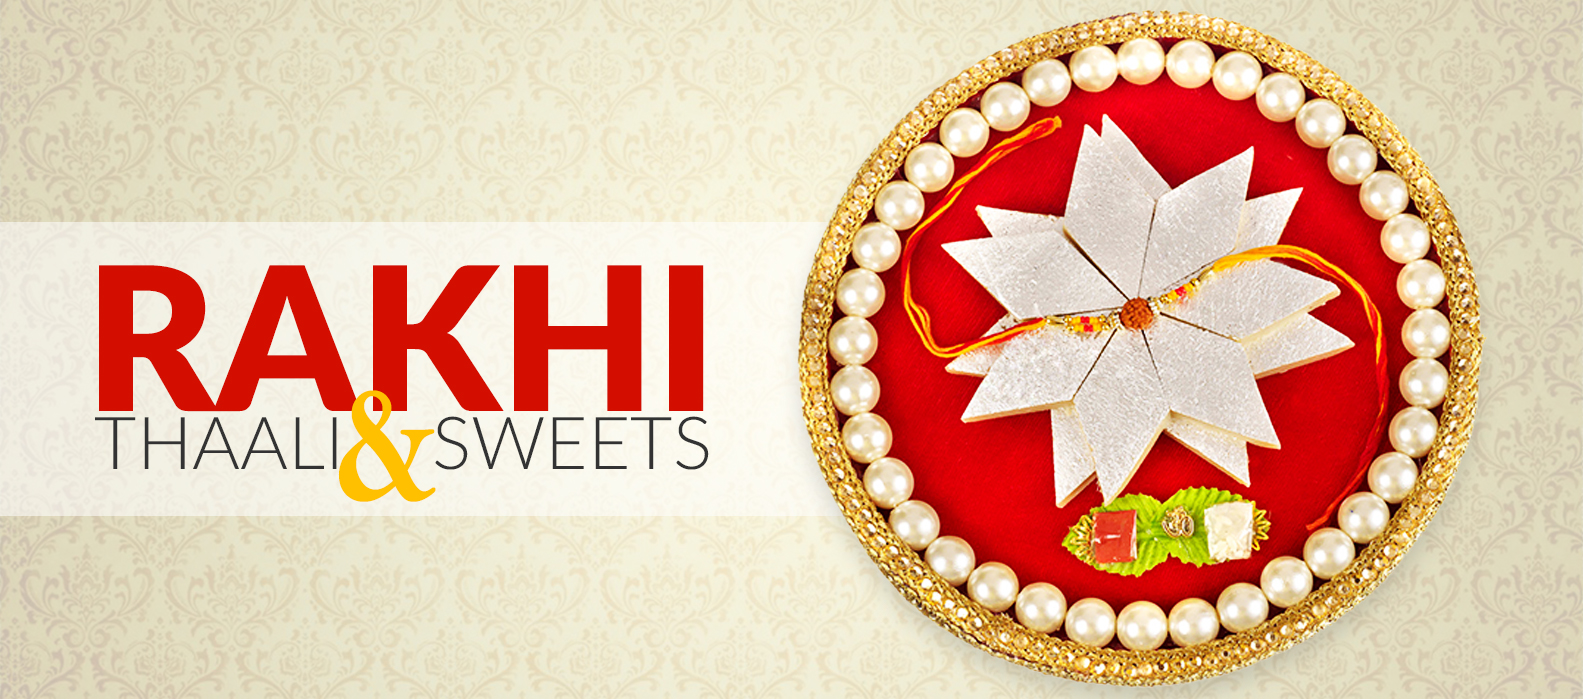 Rakhi-Thaali-and-Sweets_1583x699 (1)